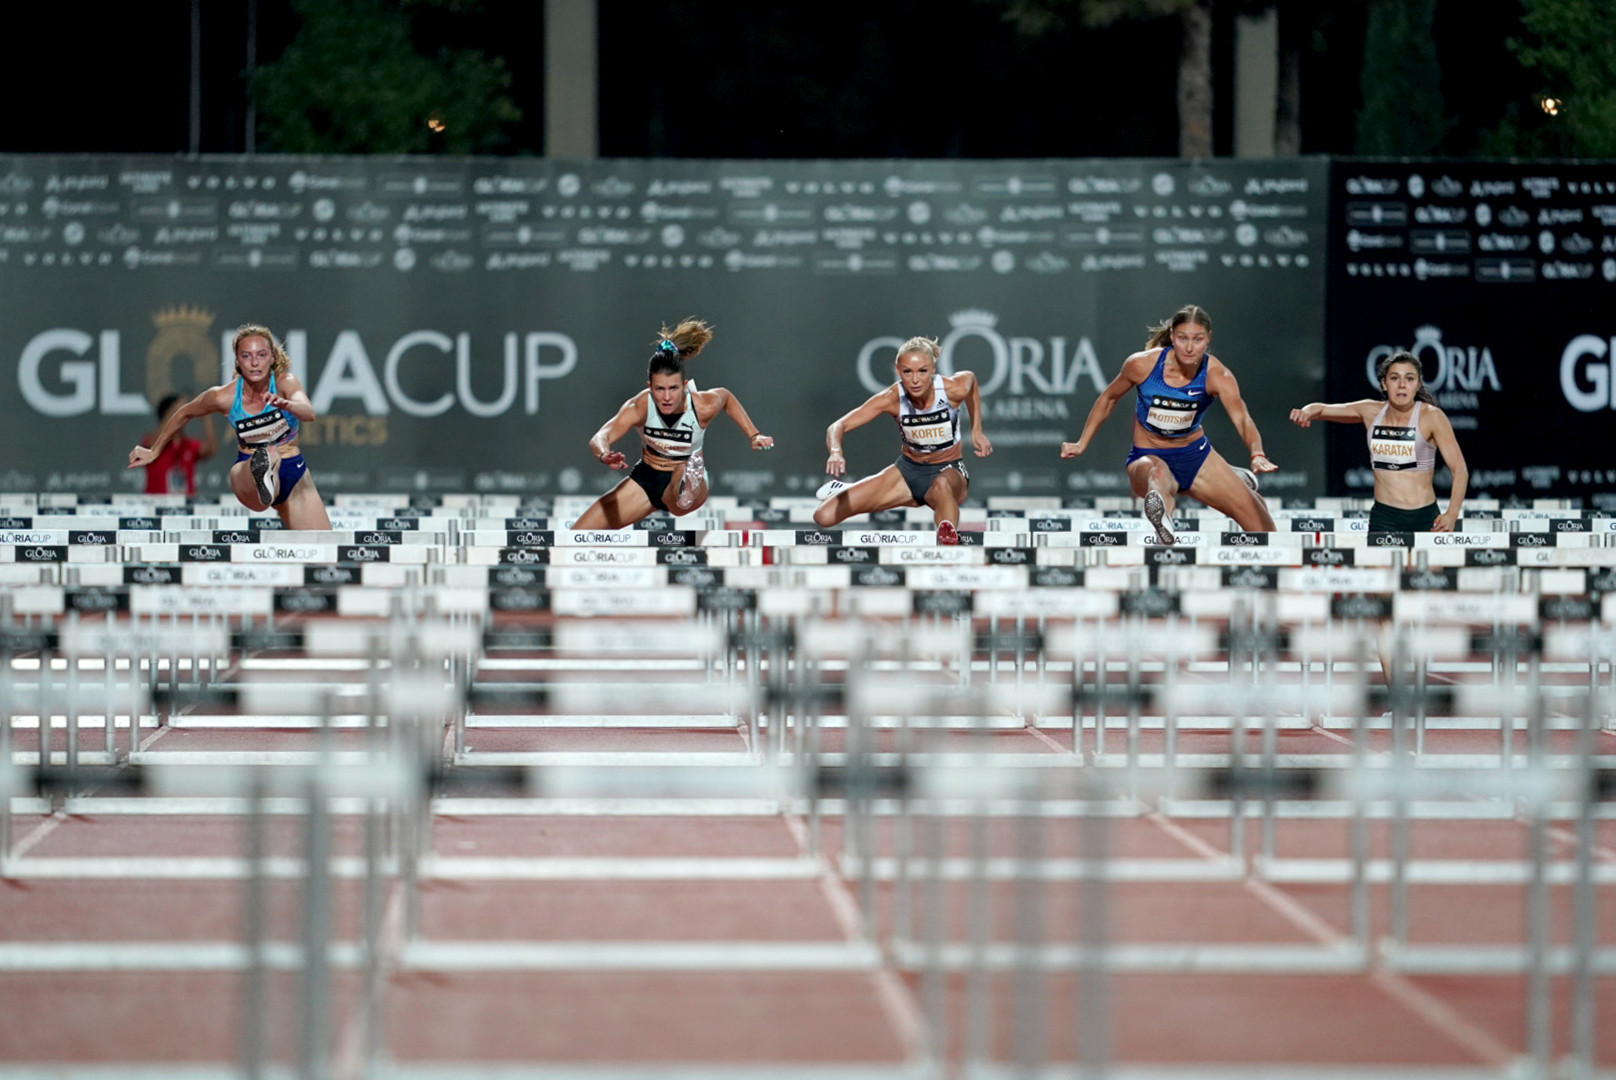 Annimari Korte of Finland claimed the women's 100m hurdles title at the Gloria Cup ©GSA/ Mine Kasapoglu